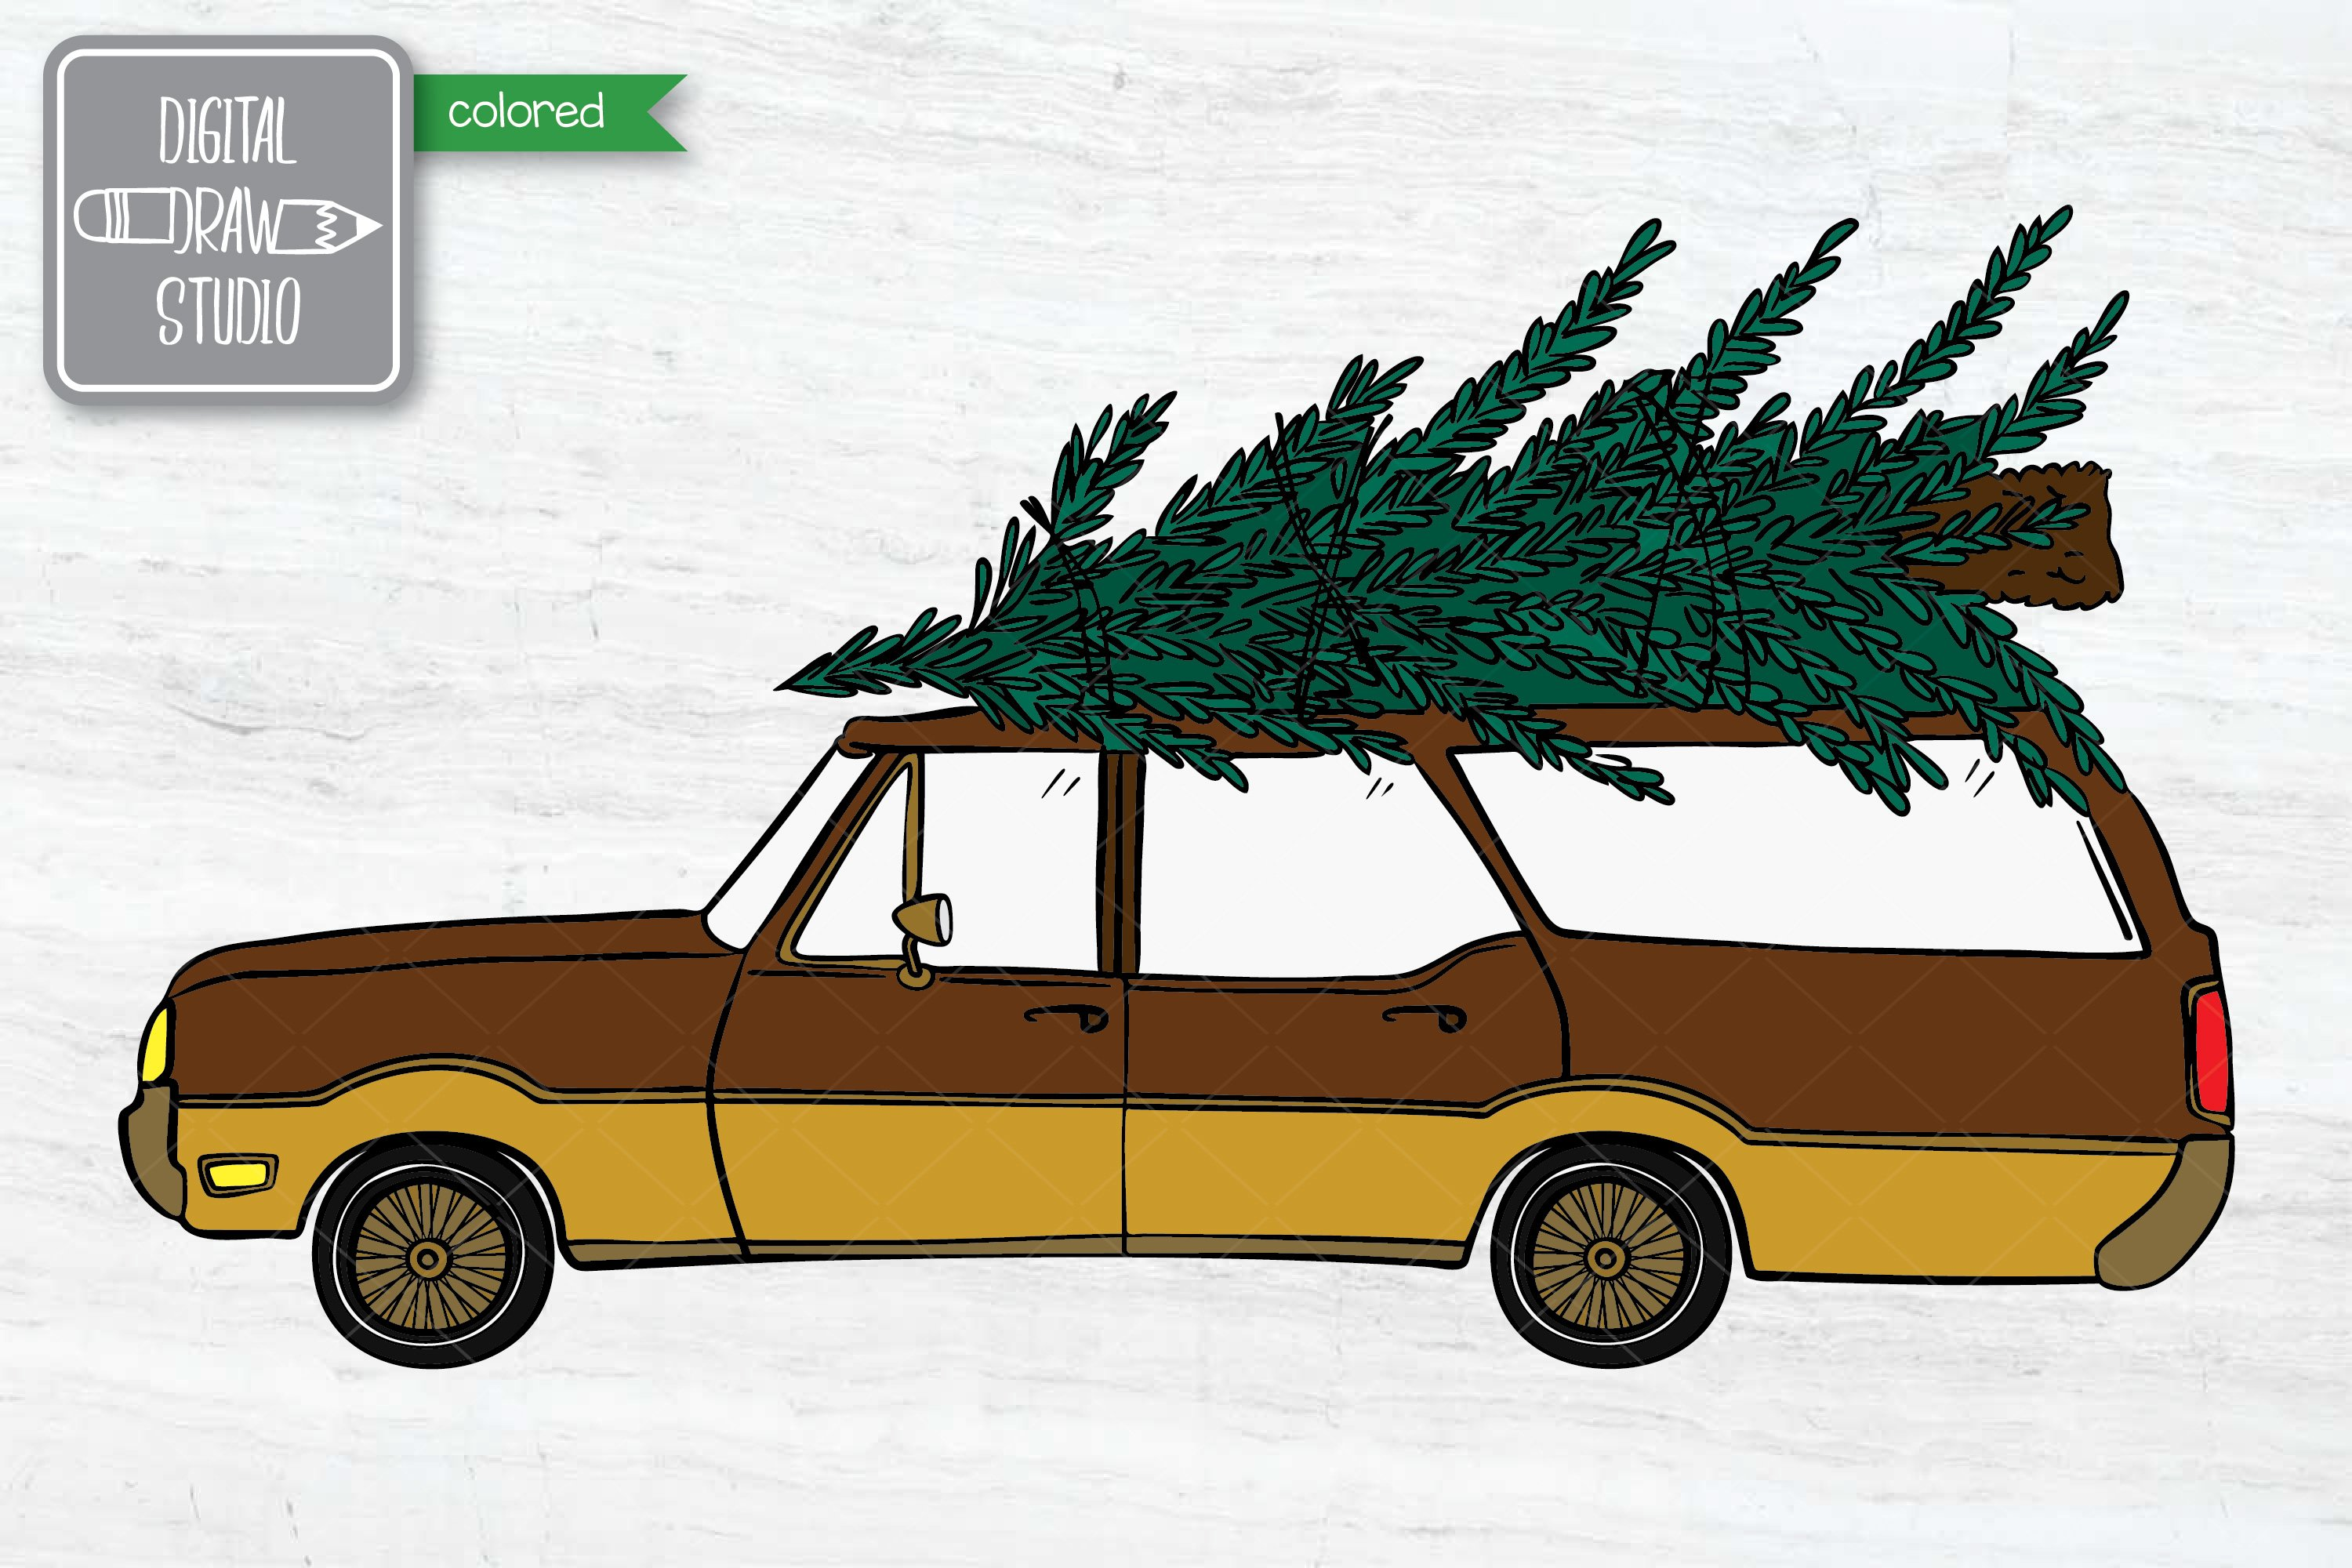 Color Station Wagon Car Christmas | Tree on Roof Top Holiday example image 2